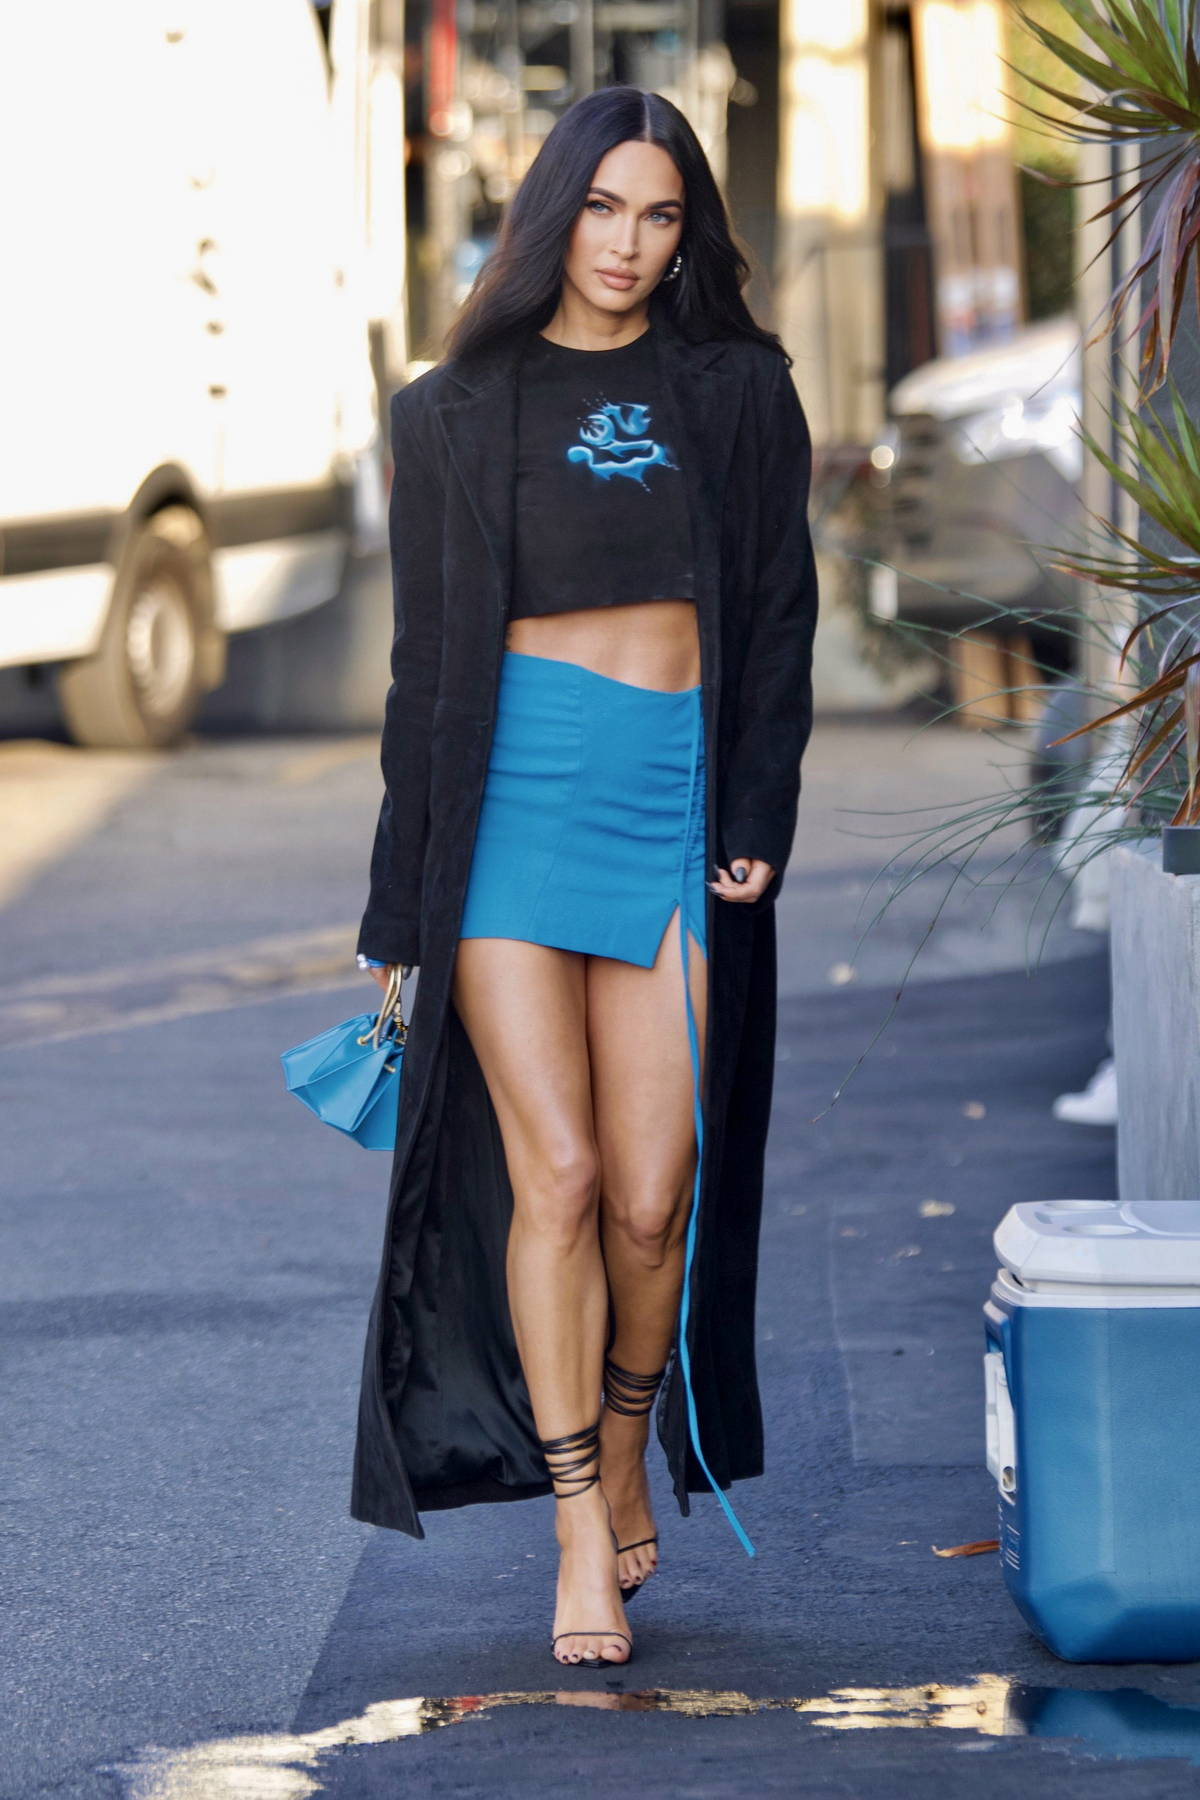 Megan Fox looks stunning in a blue mini skirt with a crop top and long black coat in Beverly Hills, California